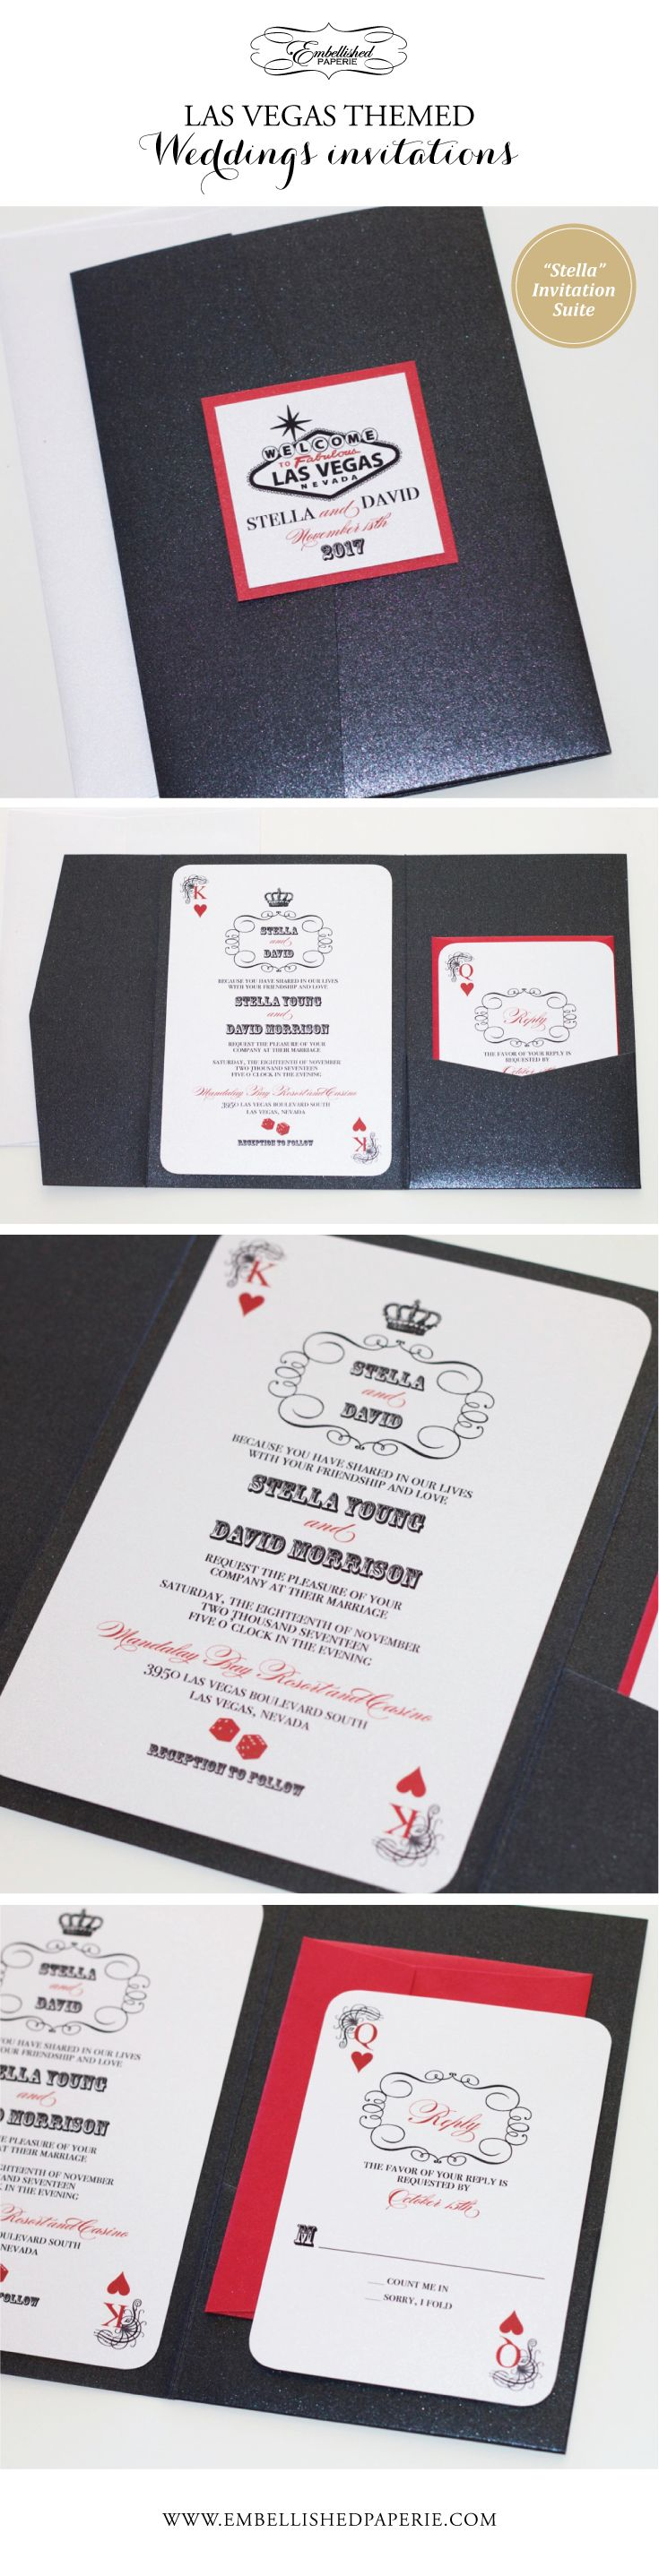 Las Vegas Wedding Invitation - Perfect for a Las Vegas Wedding or Casino Themed Party.  Colors can be customized.  Black Metallic Pocket folder - Playing card style Invitation and RSVP Cards printed on White metallic in Red and Black.  www.embellishedpaperie.com